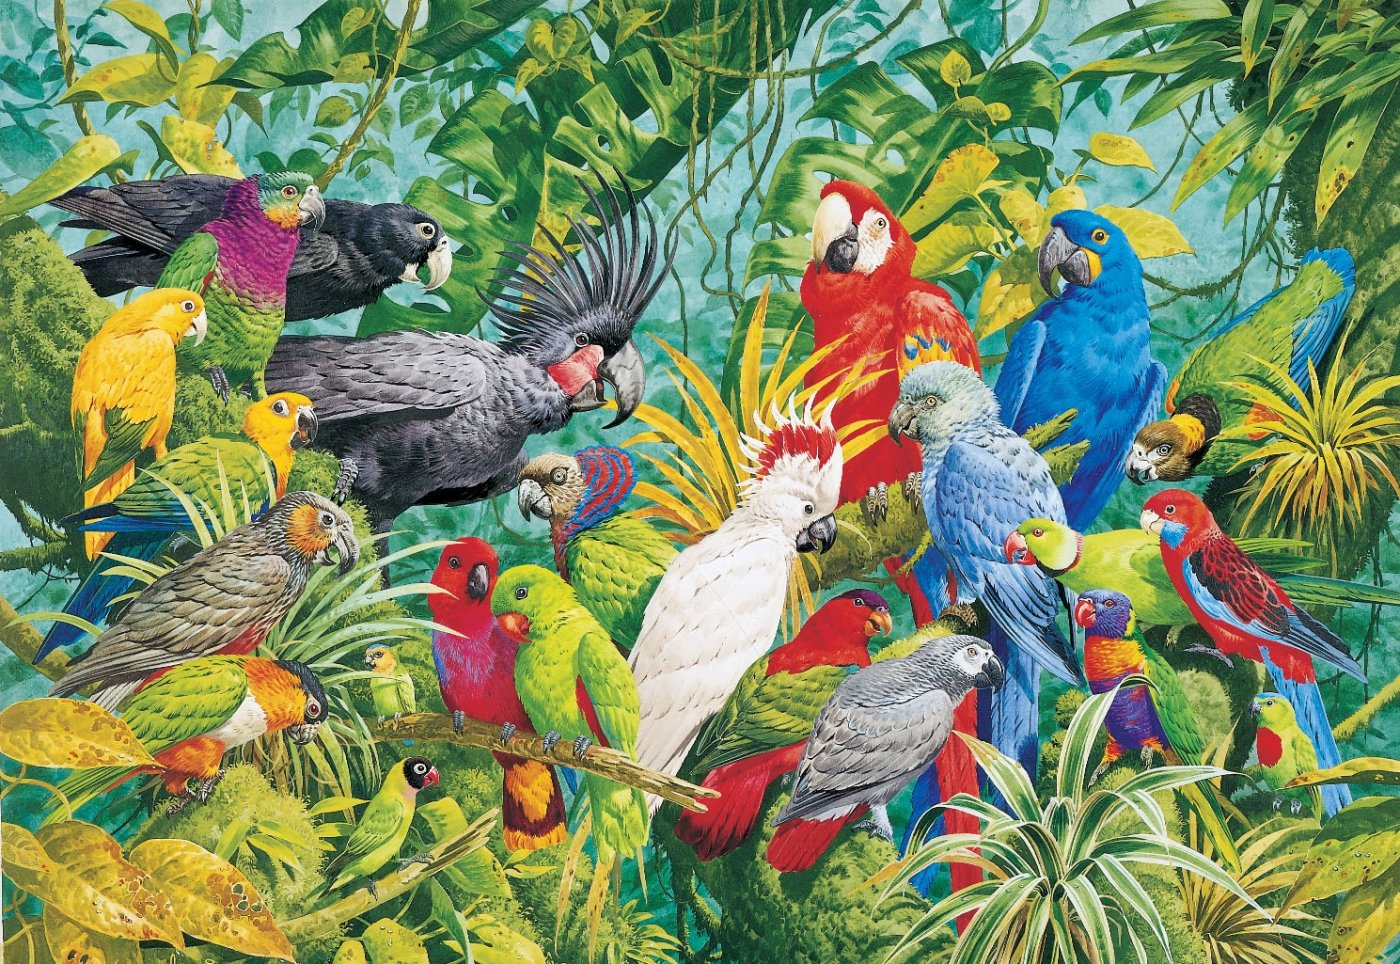 LUMJHG016_Rainforest_Parrots.jpg